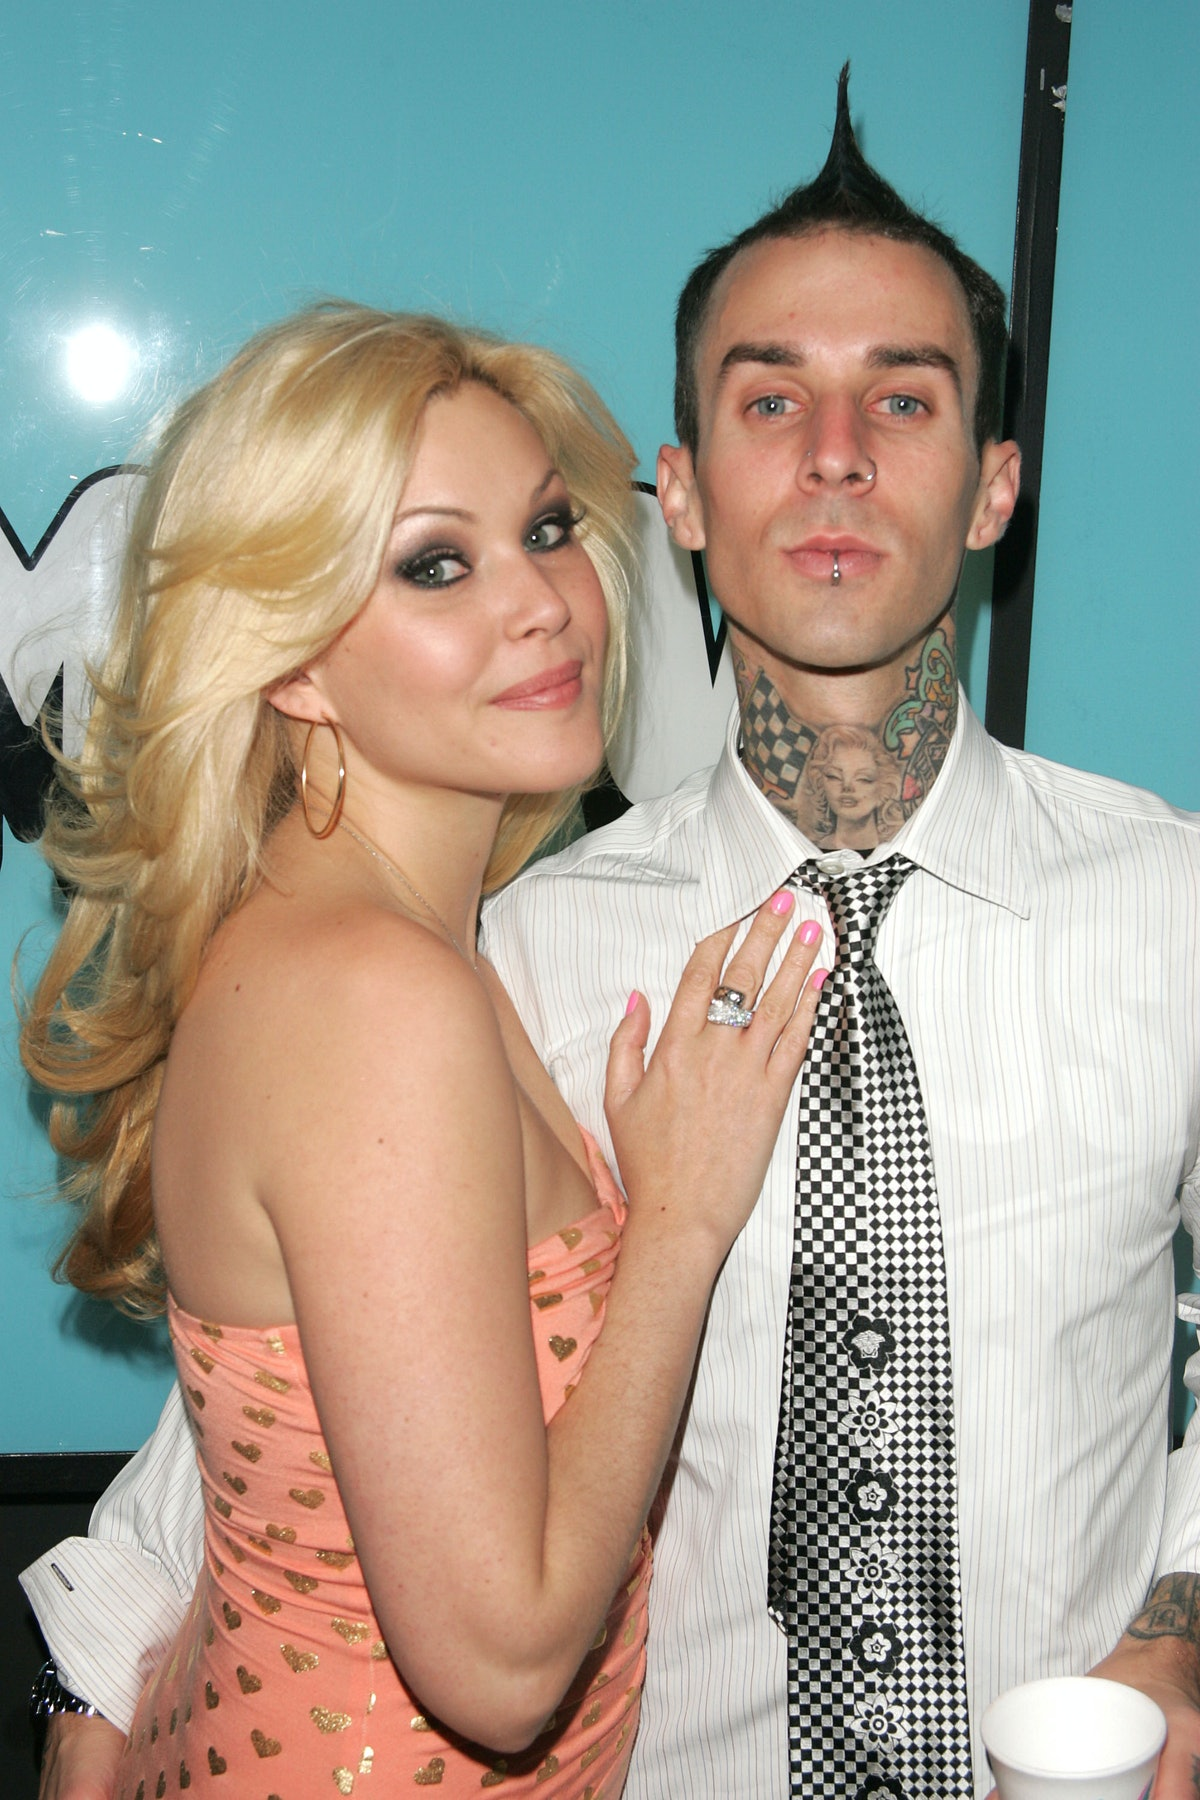 """NEW YORK - APRIL 6:  (U.S. TABLOIDS OUT)  From """"Meet The Barkers"""" Shanna Moakler and Travis Barker make an appearance on MTV's Total Request Live on April 6, 2005 in New York City.  (Photo by Peter Kramer/Getty Images)"""